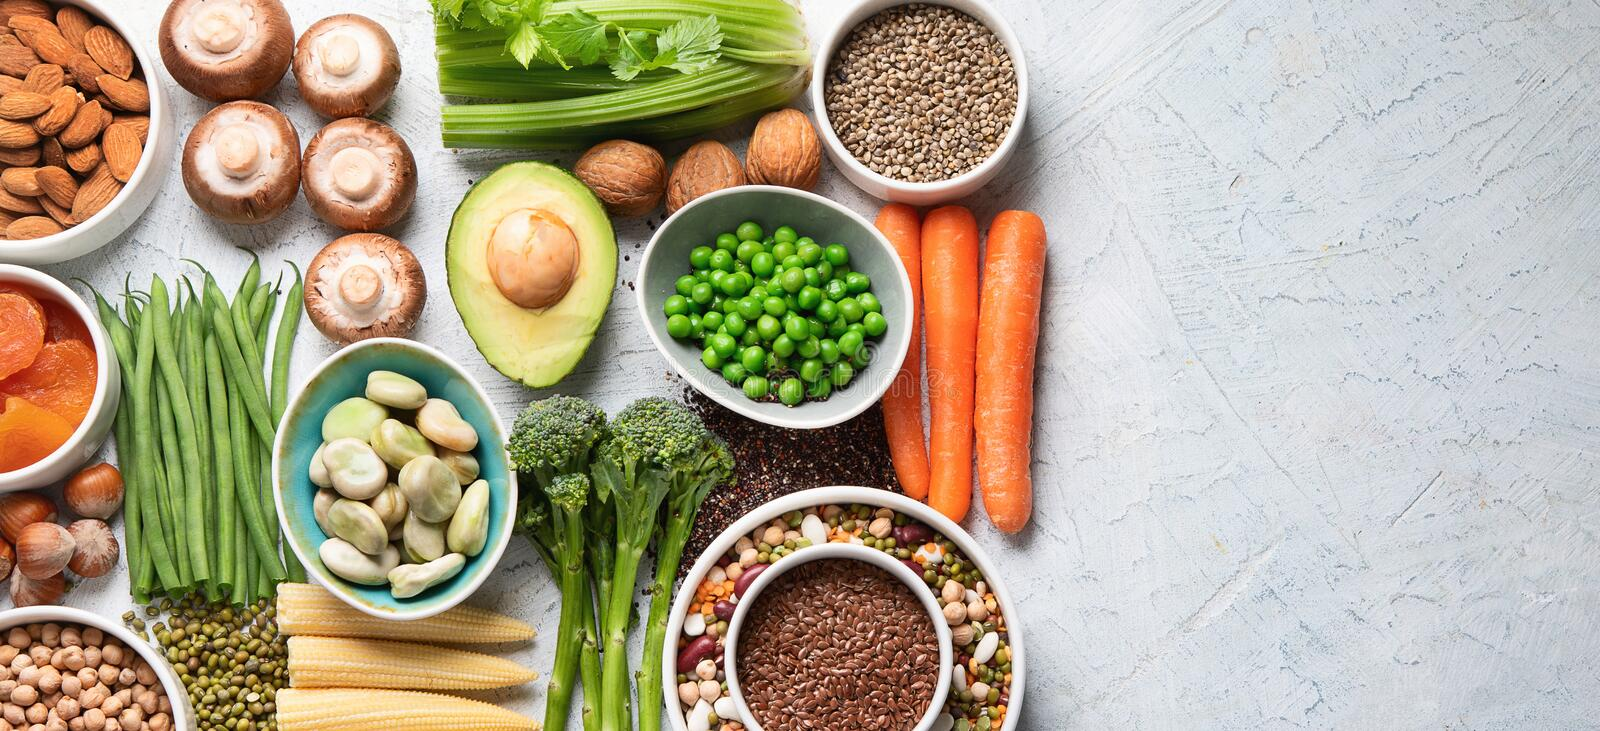 Food sources of plant based protein. Healthy diet with  legumes, dried fruit, seeds, nuts and vegetables.  Foods high in protein, antioxidants, vitamins and royalty free stock photos